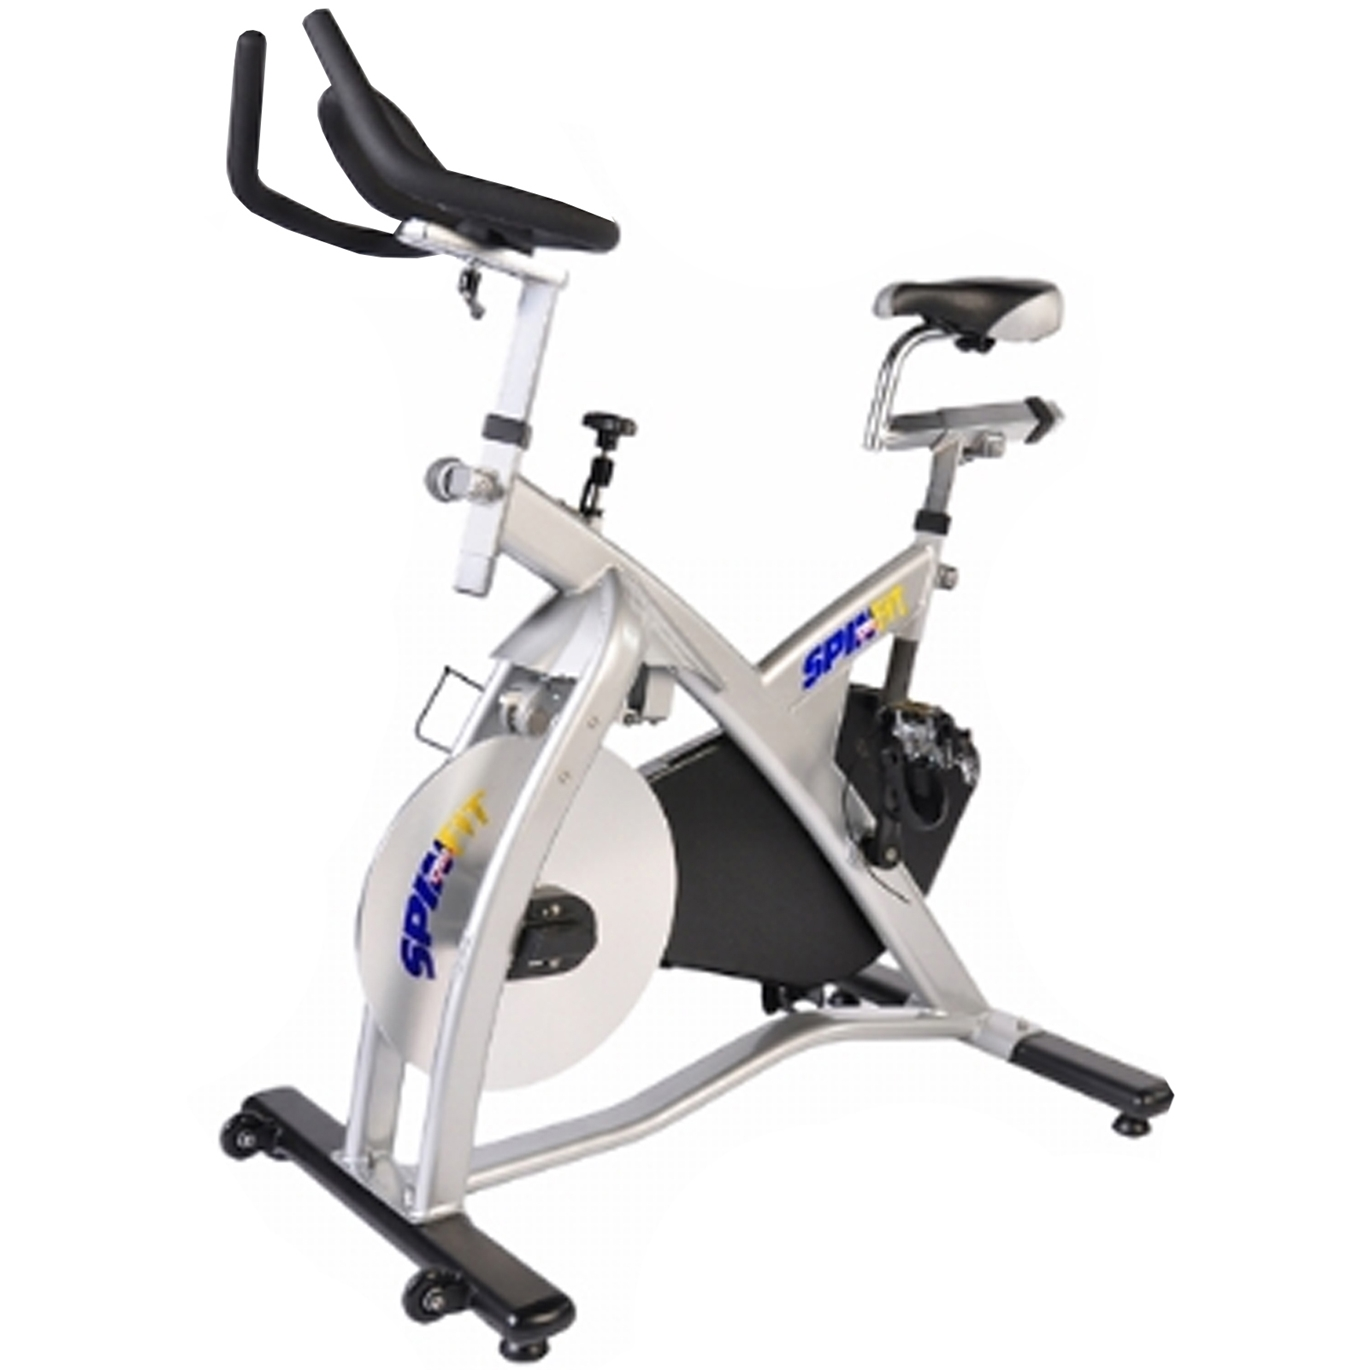 Fitness Equipment Port Coquitlam: Your Fitness Equipment Experts